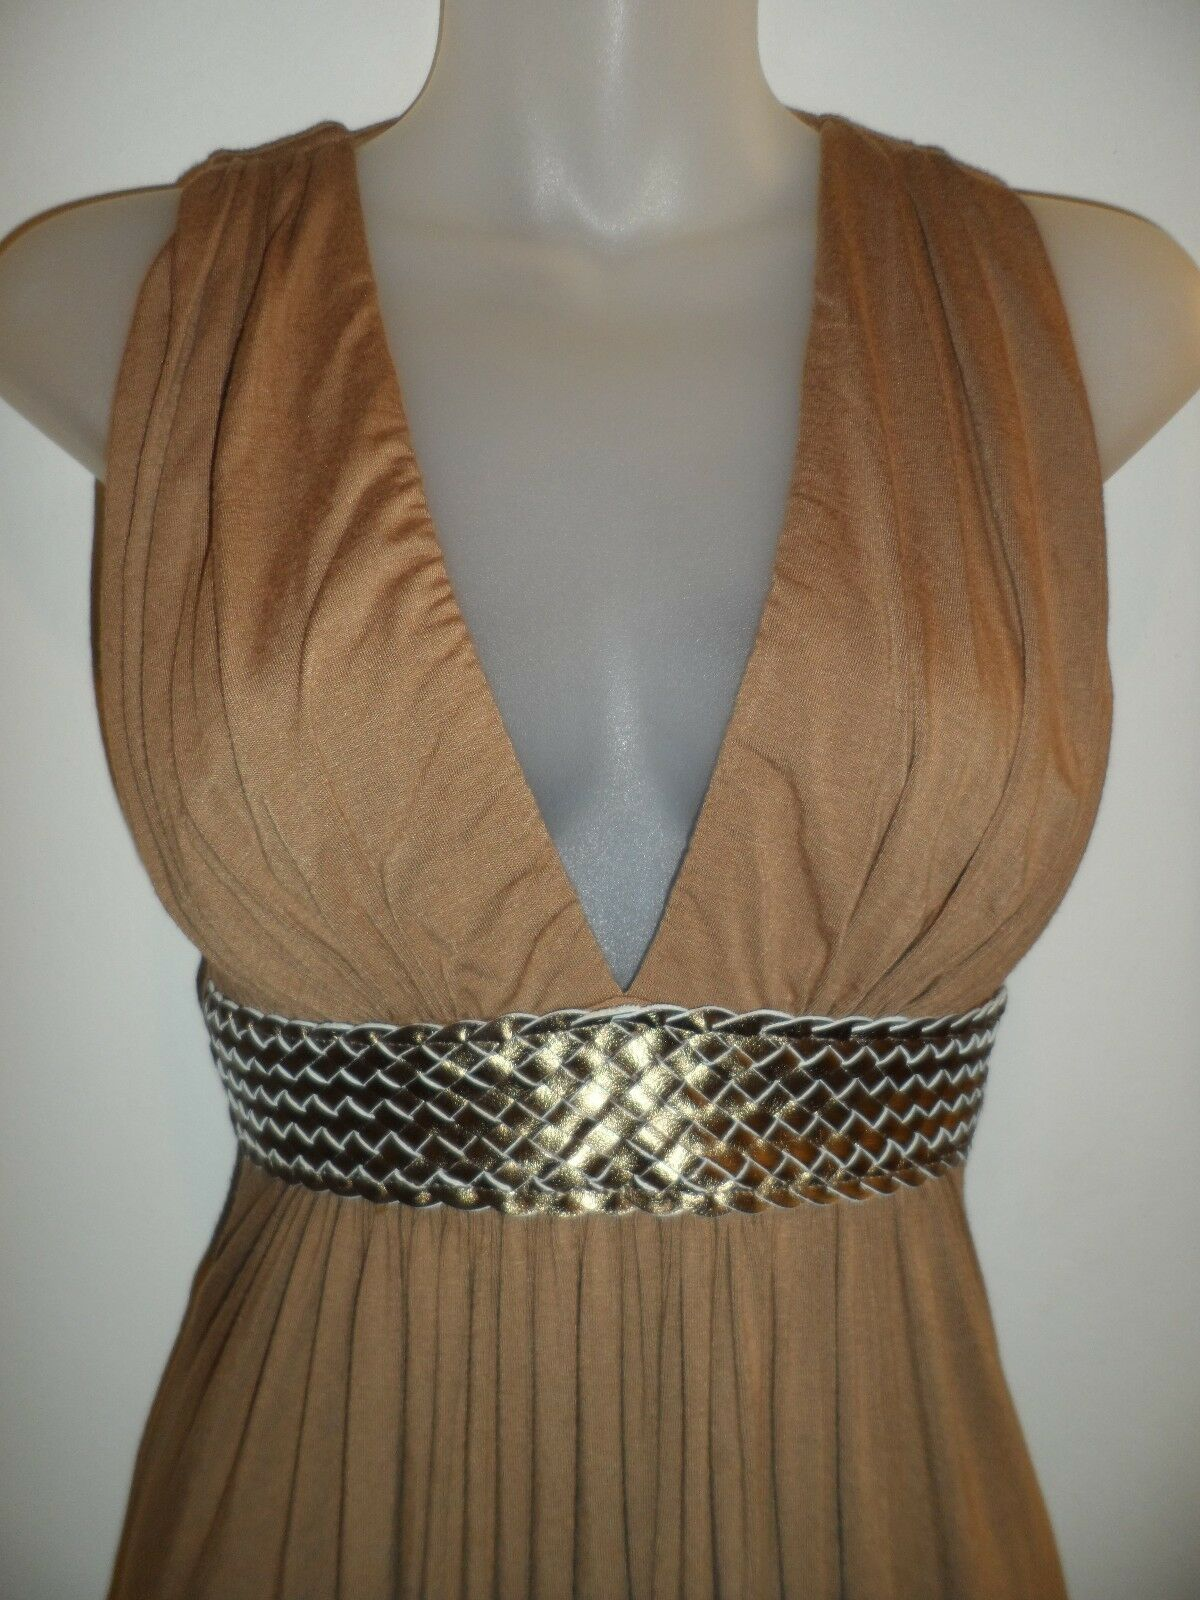 Sky Clothing Brand S Dress Brown Bronze Leather Grecian Party Club Sexy Fall EUC